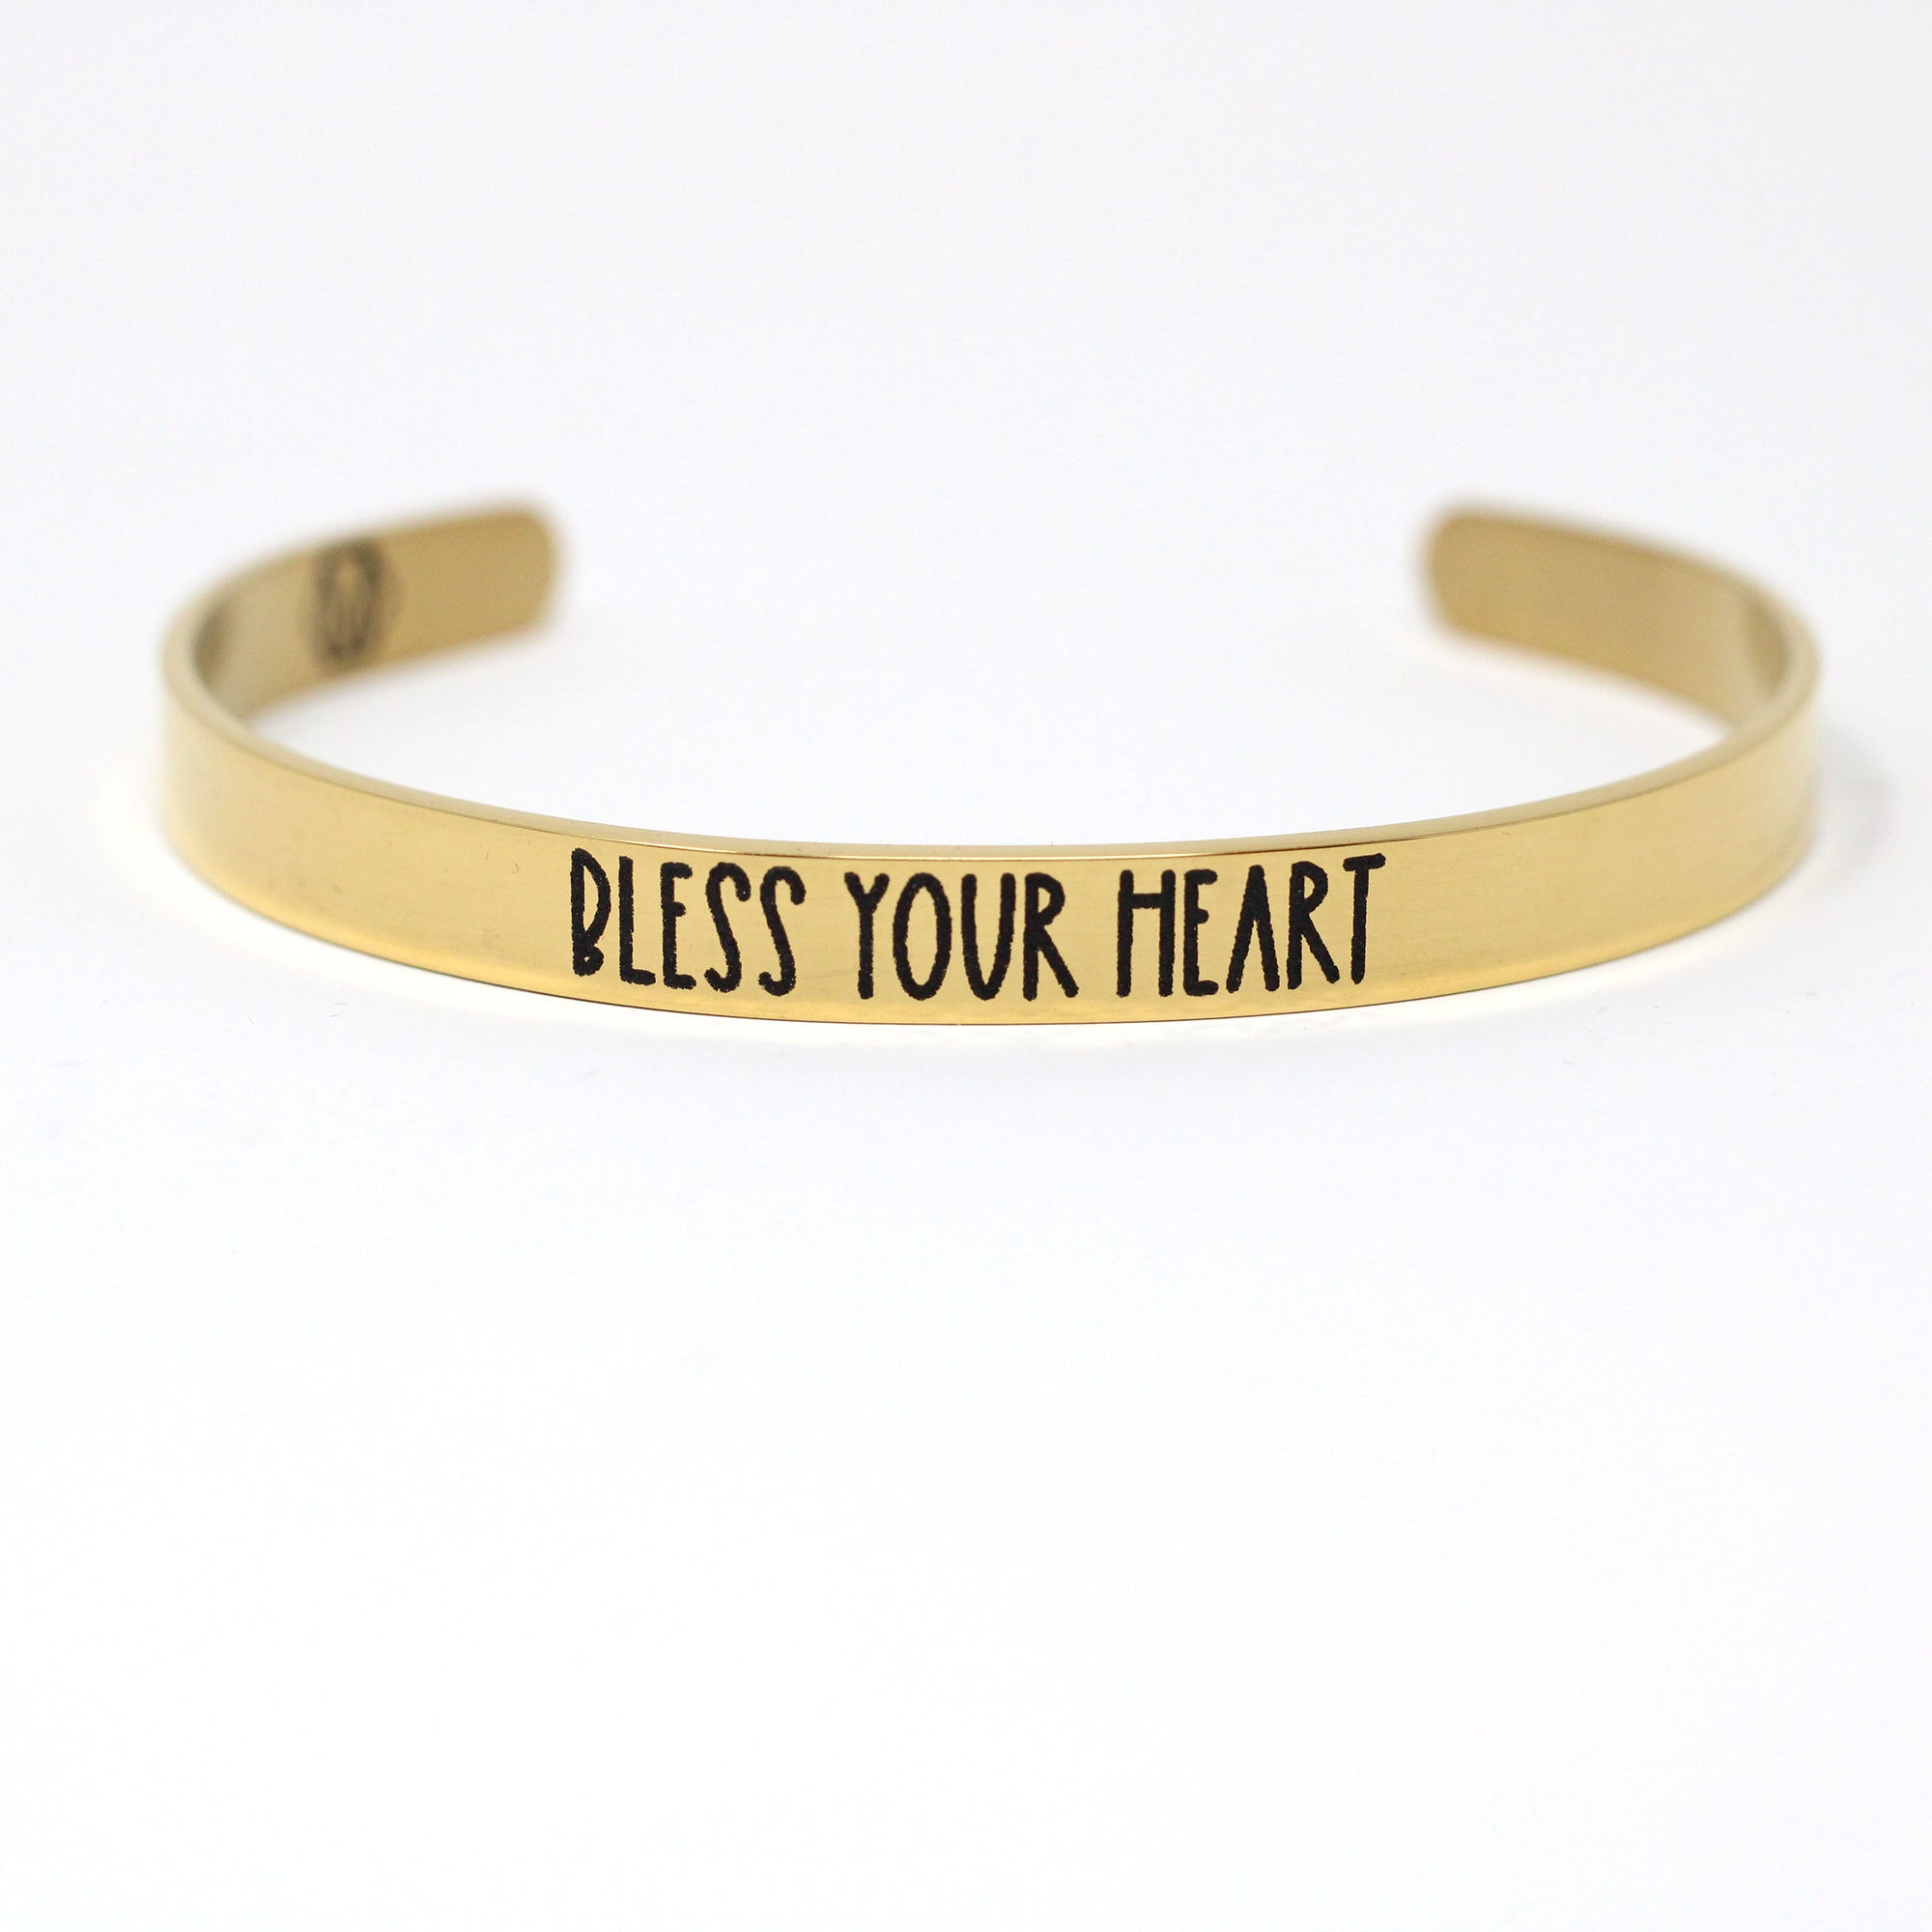 Bless your Heart Cuff Bracelet